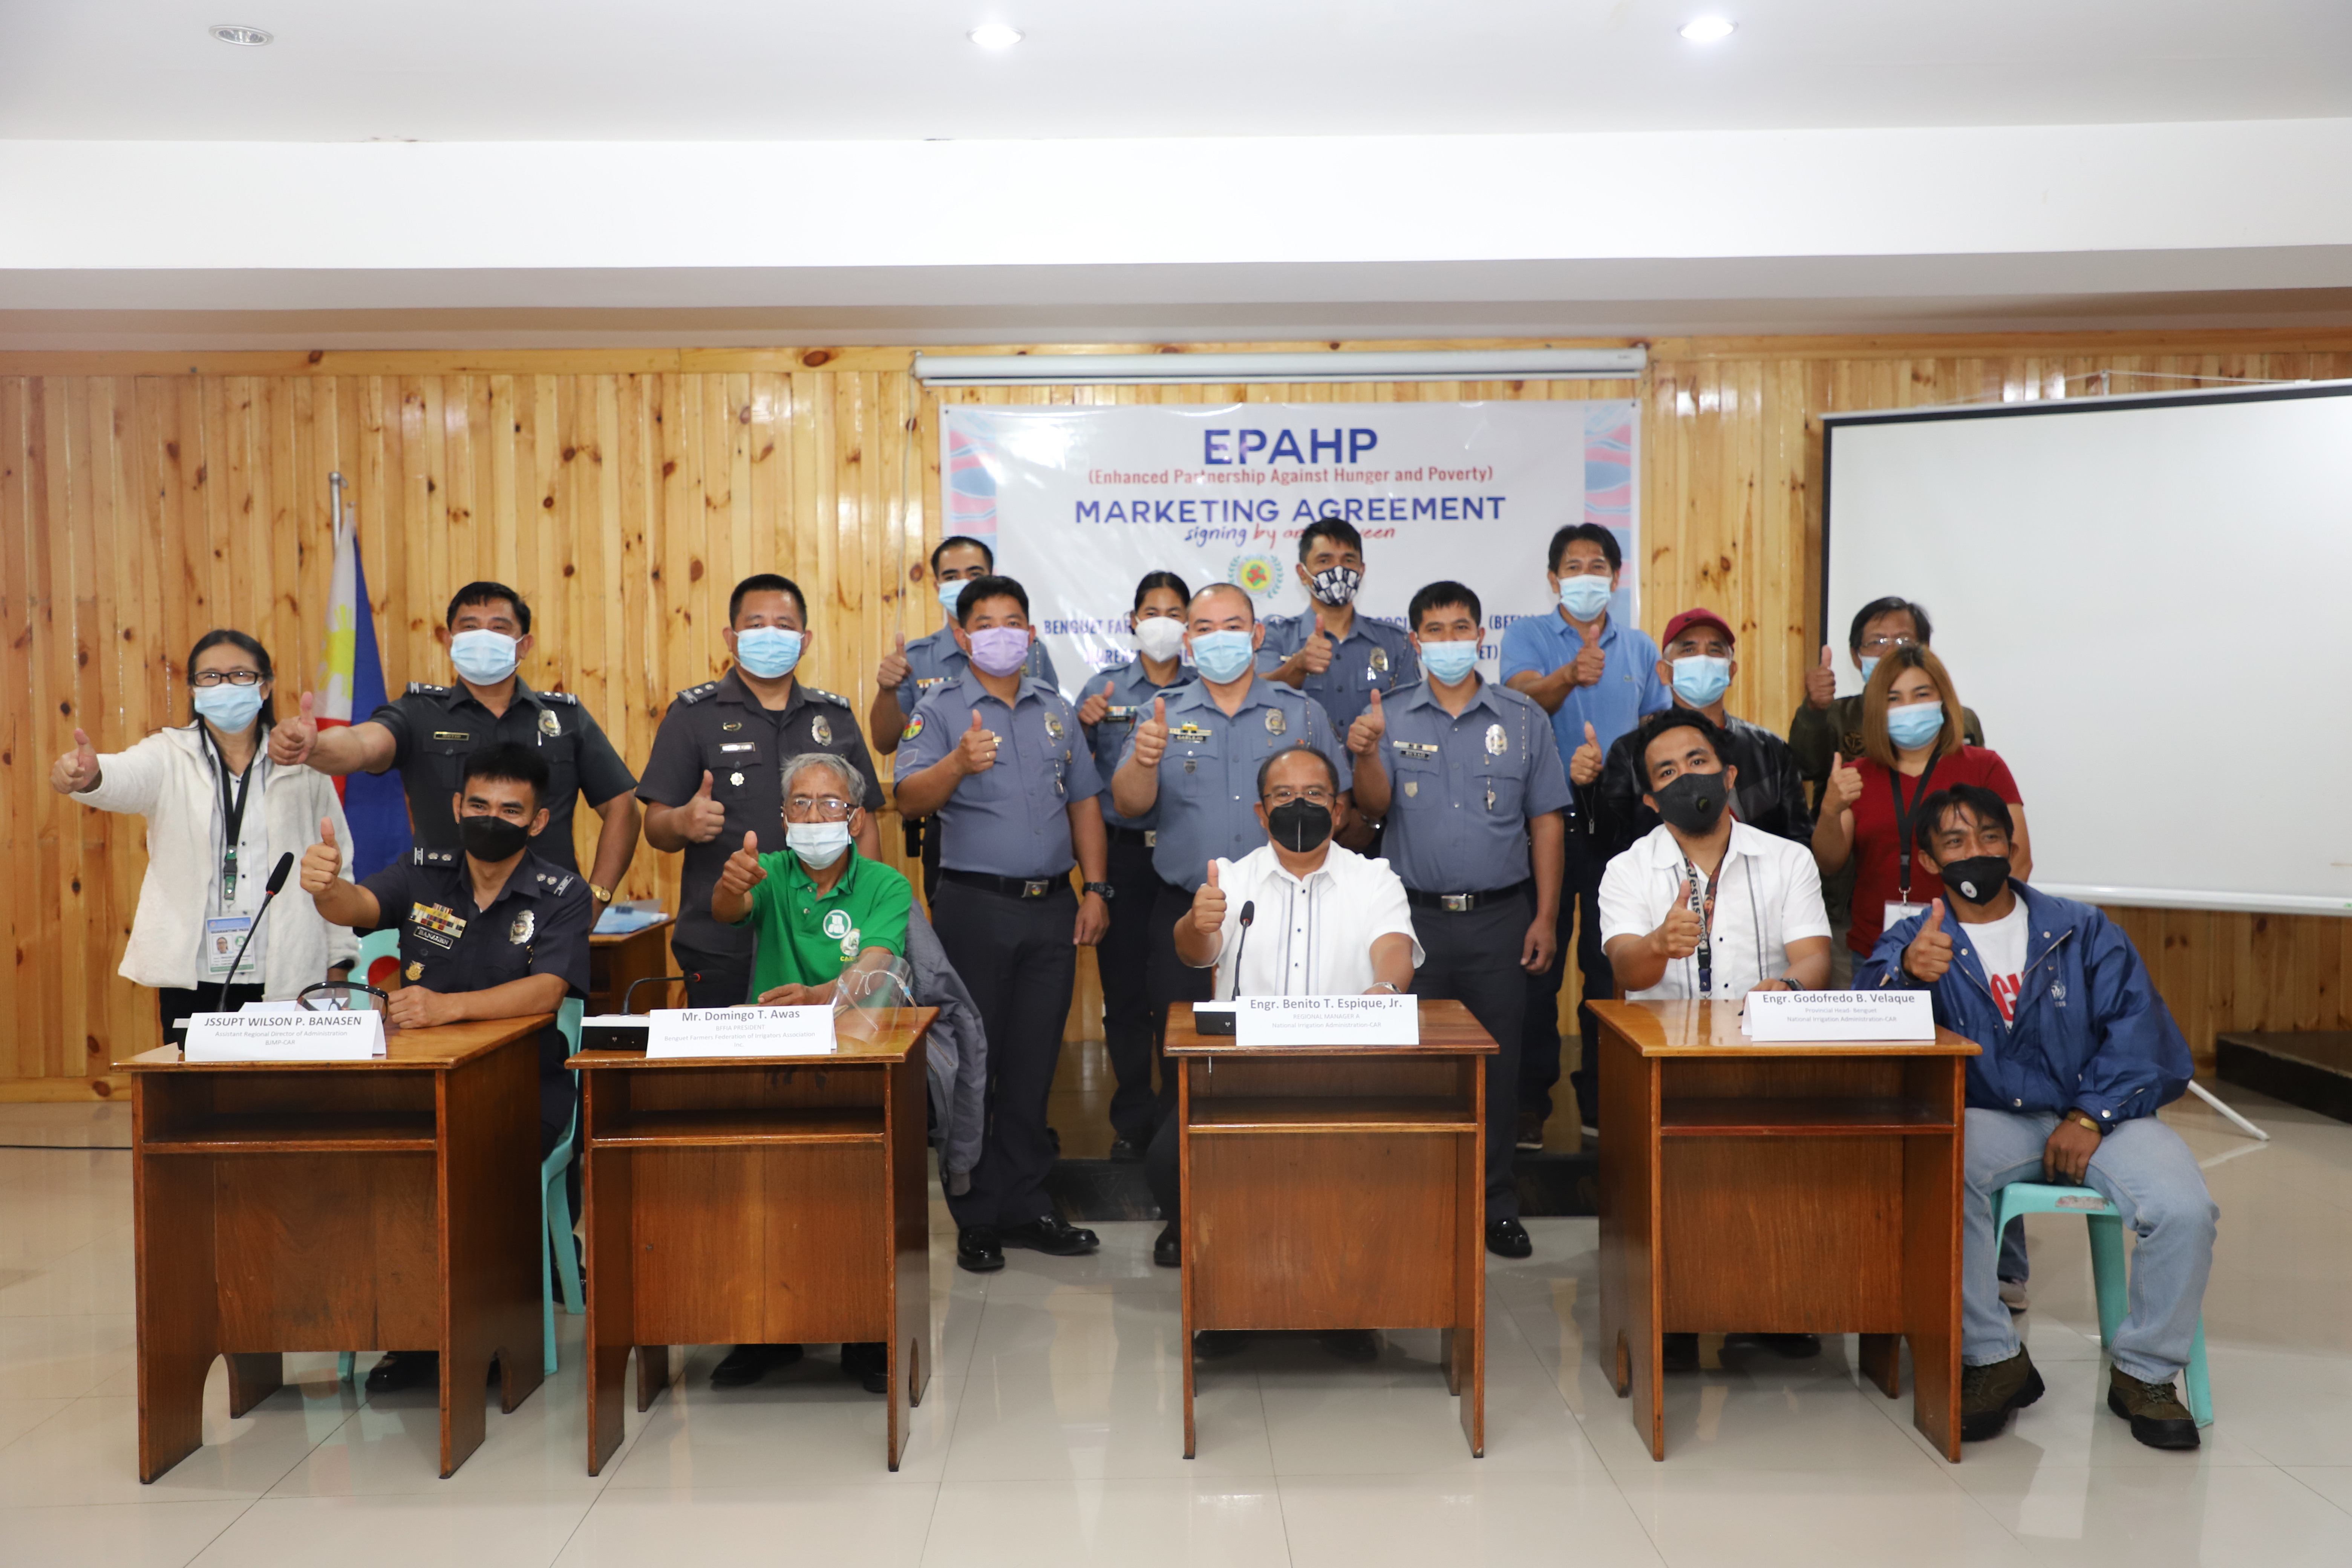 Officers of the Benguet Farmers Federation of Irrigators' Association (BFFIA) and Bureau of Jail Management and Penology (Benguet) together with officials of NIA-CAR pose for a group photo after the signing of Marketing Agreement by and between BFFIA and BJMP at the NIA Cordillera Farmers' Training Center in Wangal, La Trinidad, Benguet on June 28, 2021.